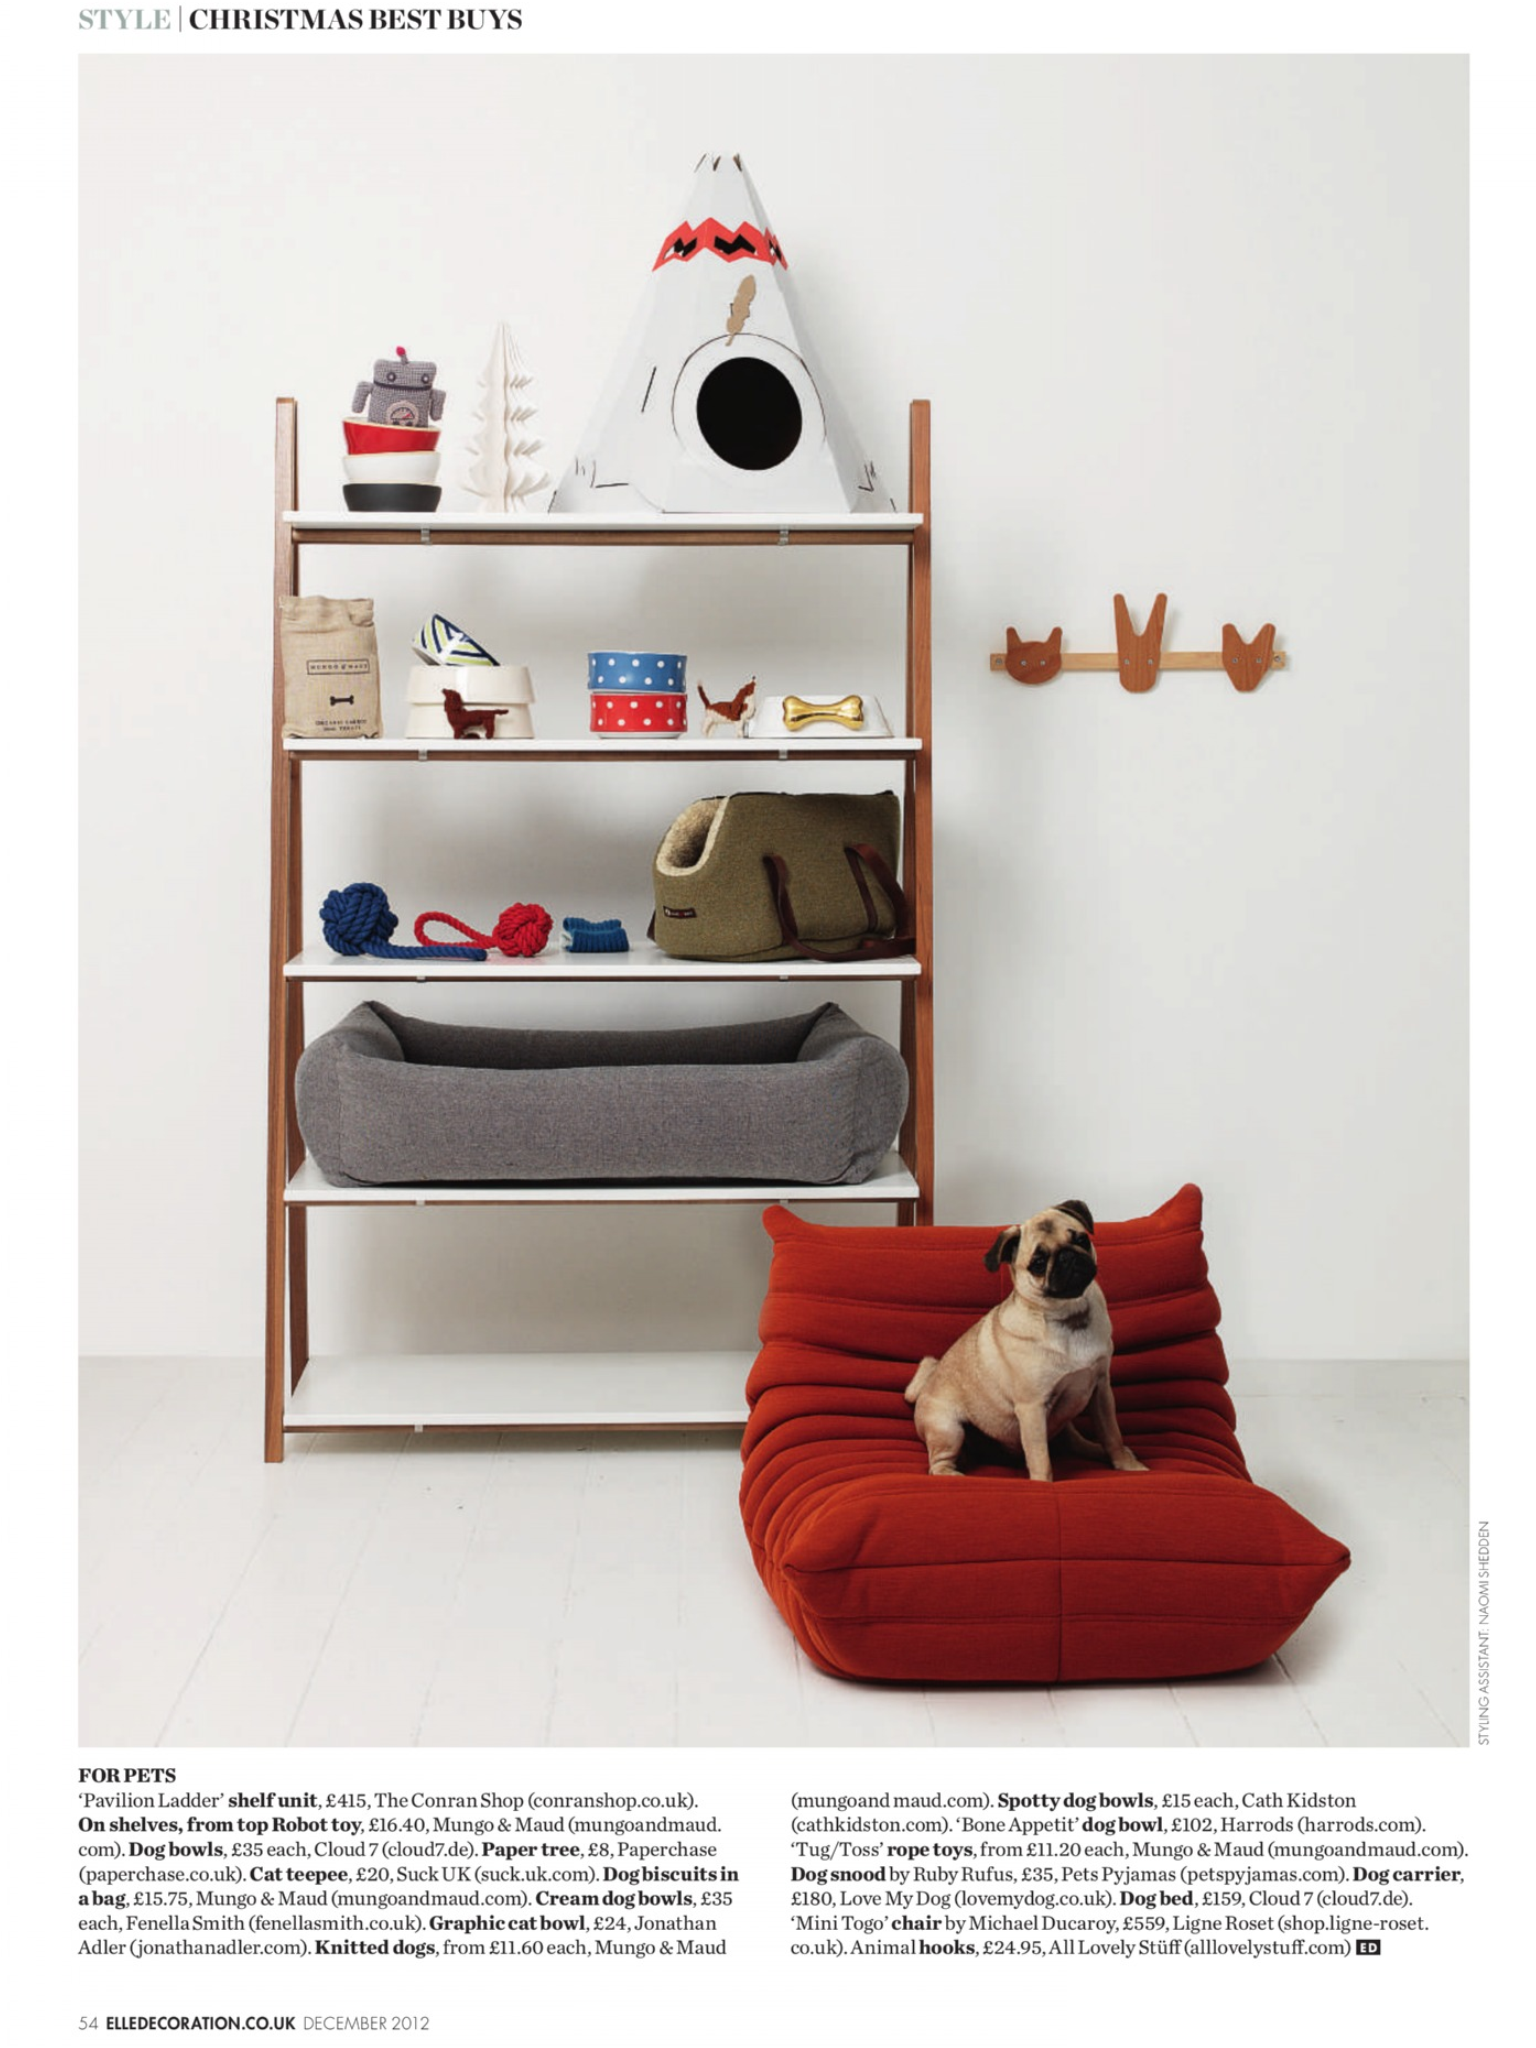 Elle Decoration UK December 2012.PNG